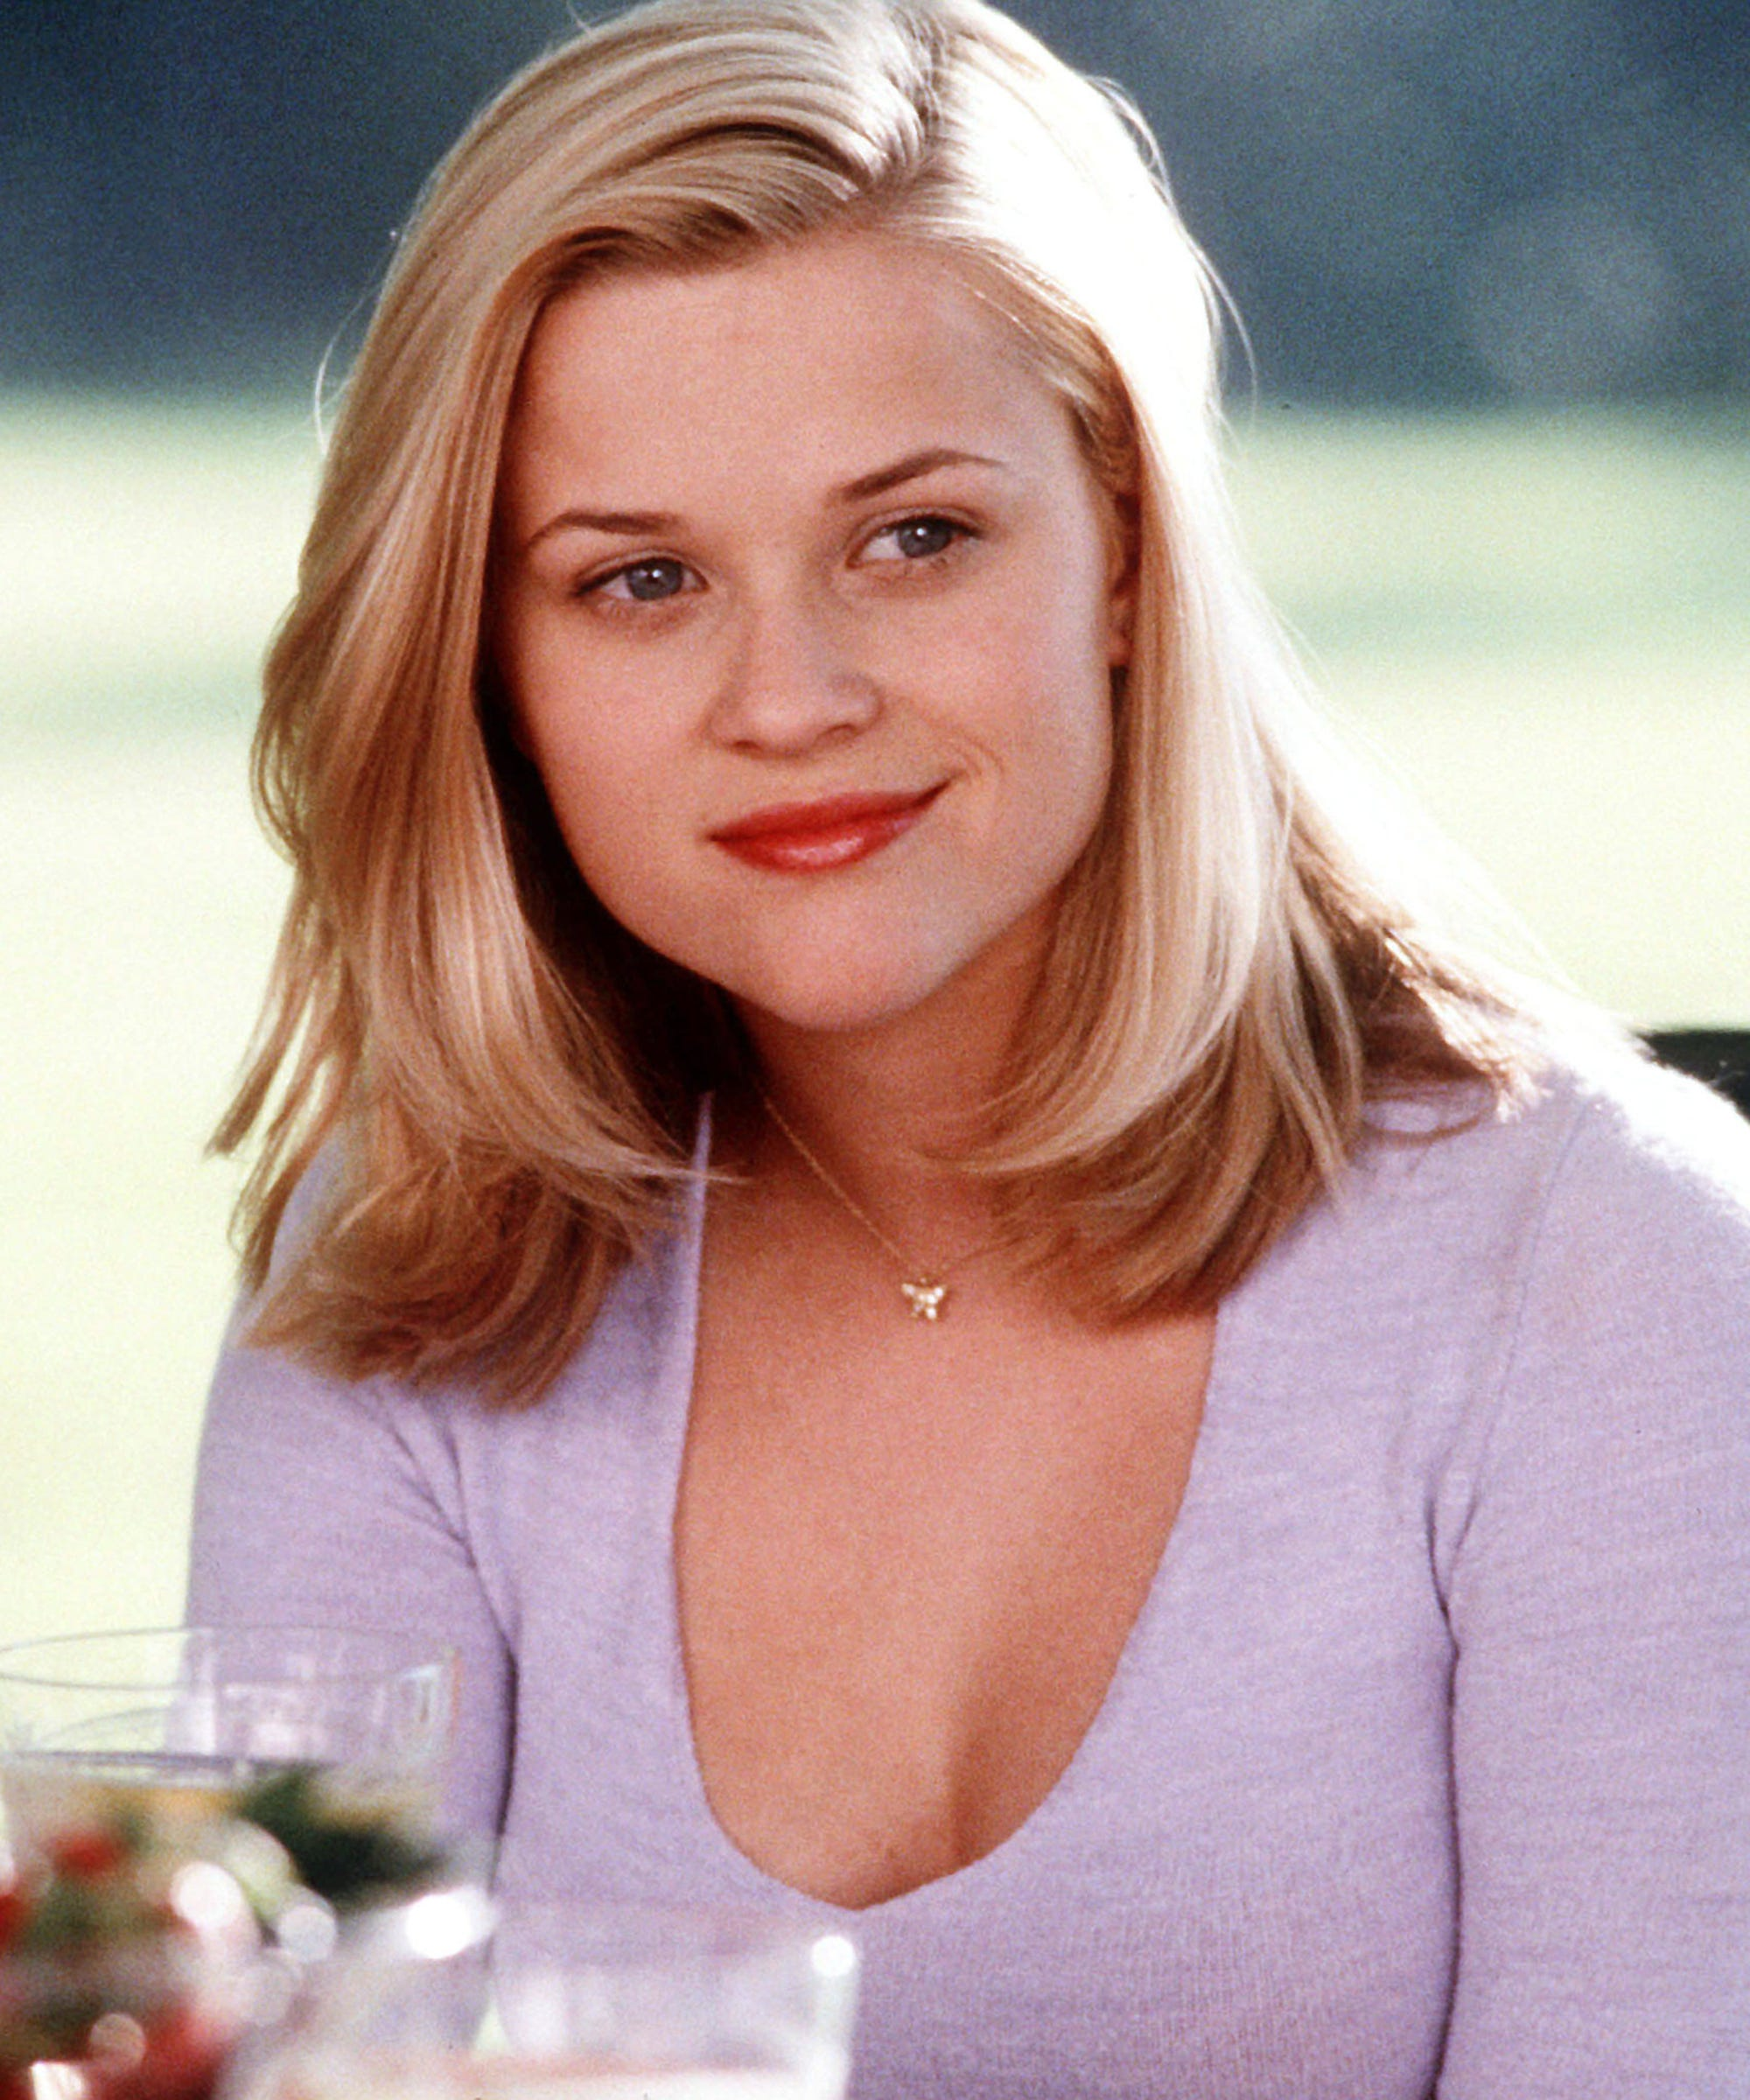 Reese Witherspoon Look Alike Daughter Gets 90s Bob